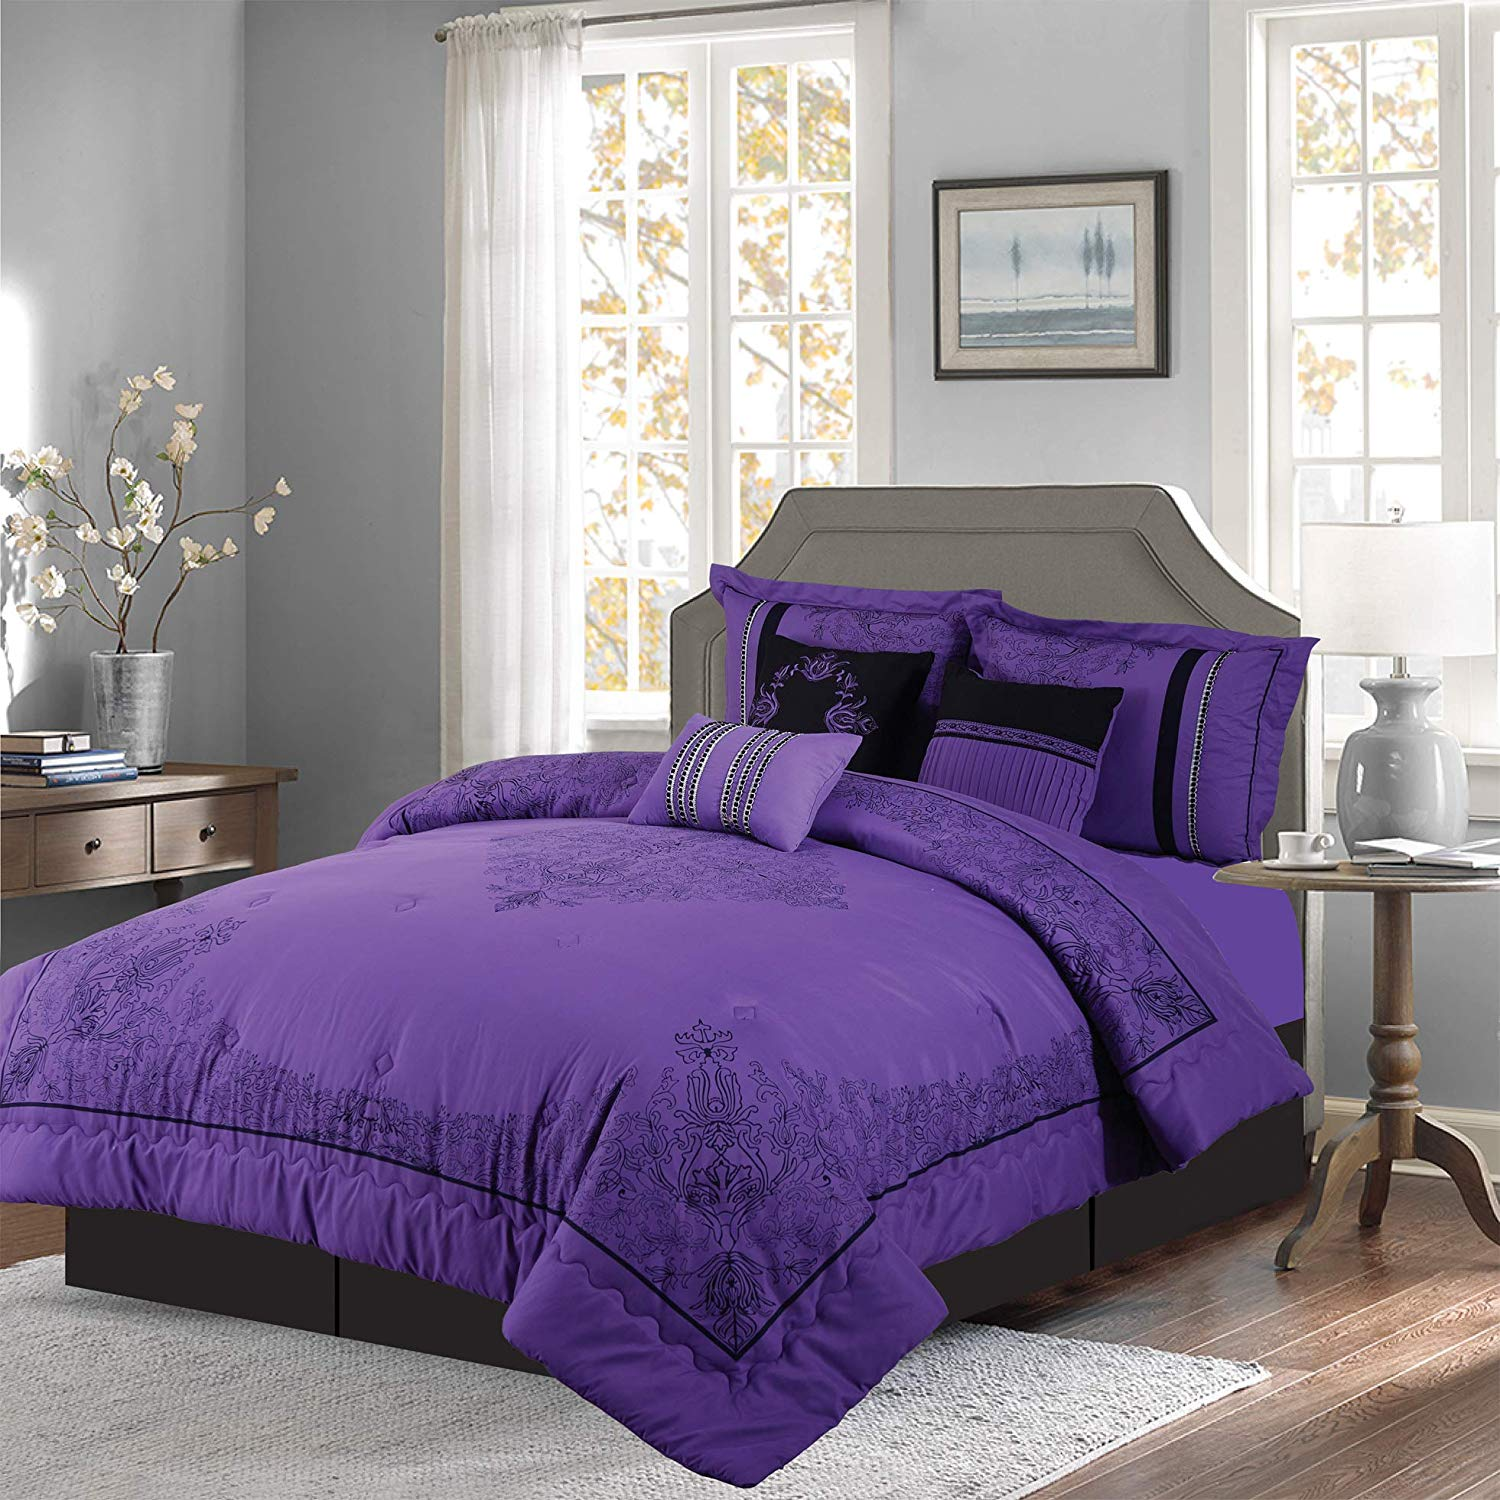 Empire Home Dawn 7 Piece Comforter Set Over Sized Bed In A Bag King Size Purple & Black NEW ARRIVAL 50% SALE